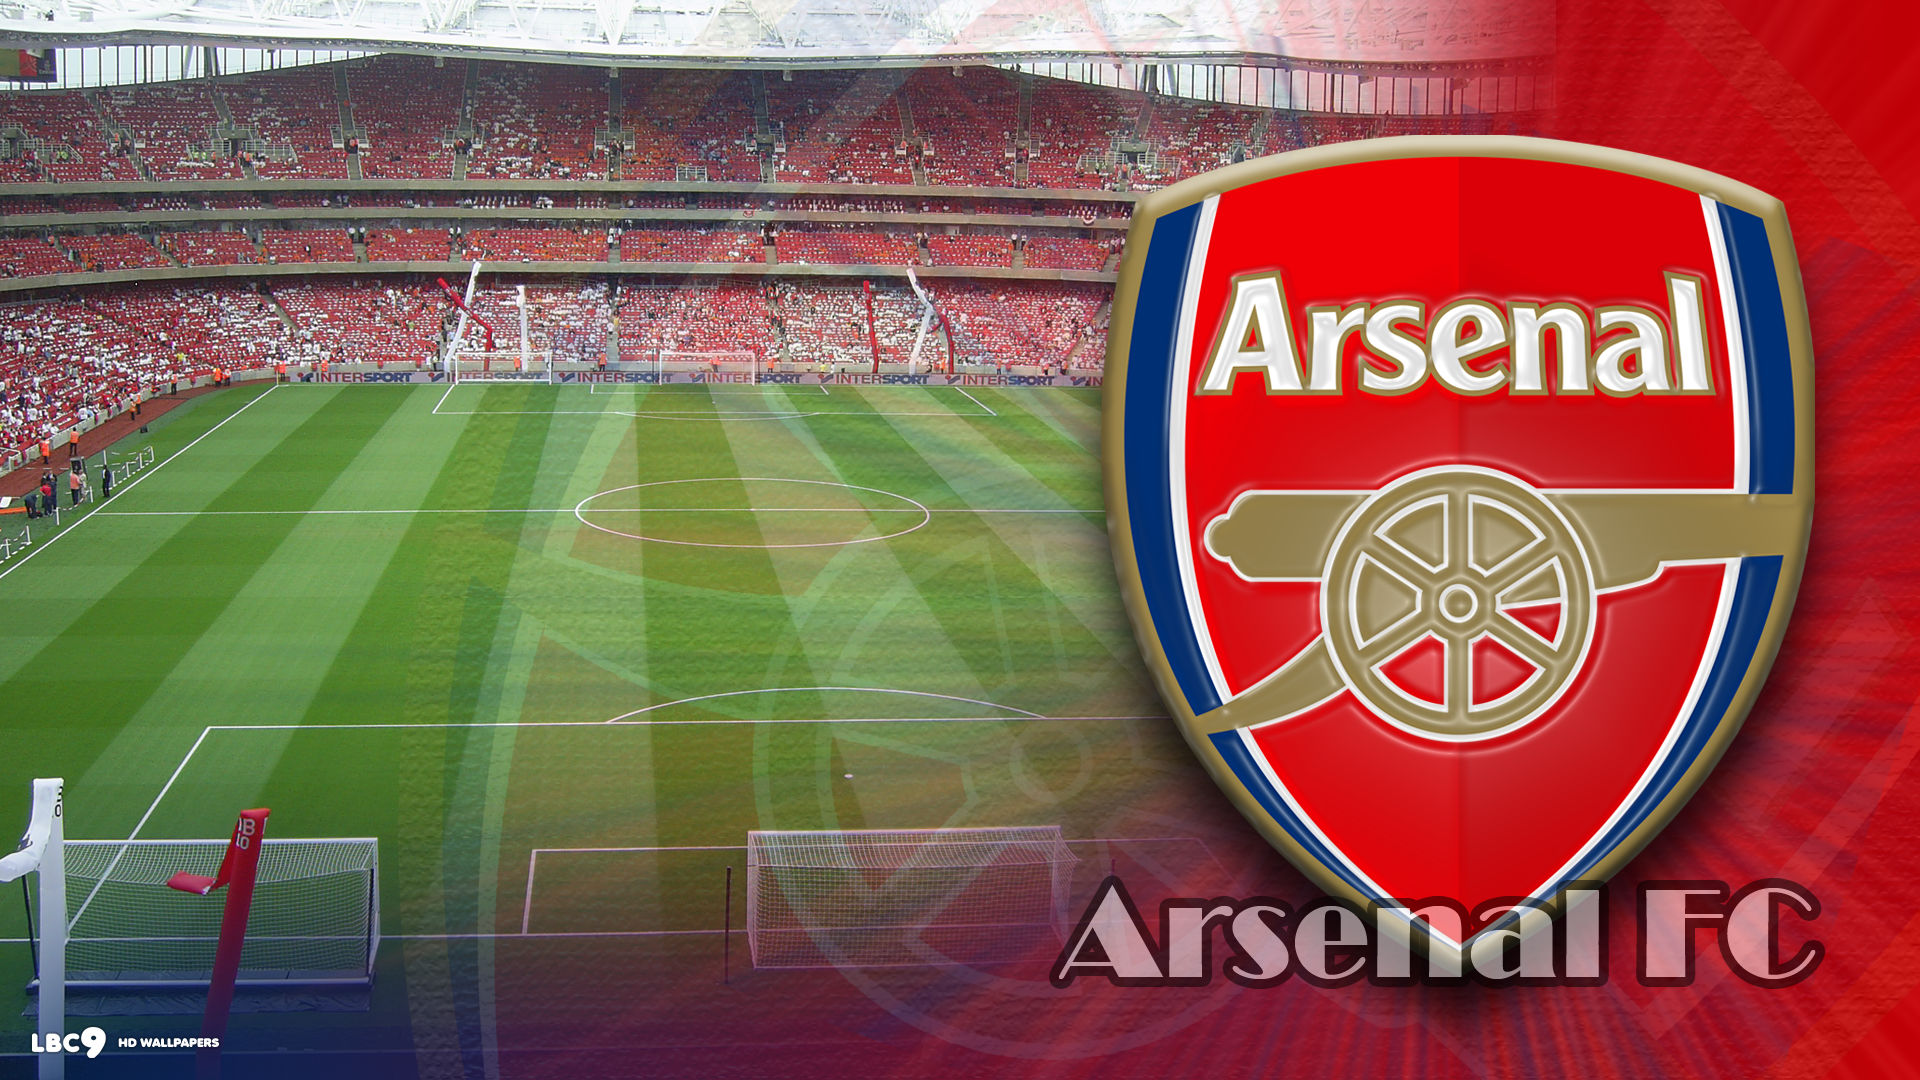 Arsenal Gallery: Emirates Stadium Wallpapers (34 Wallpapers)